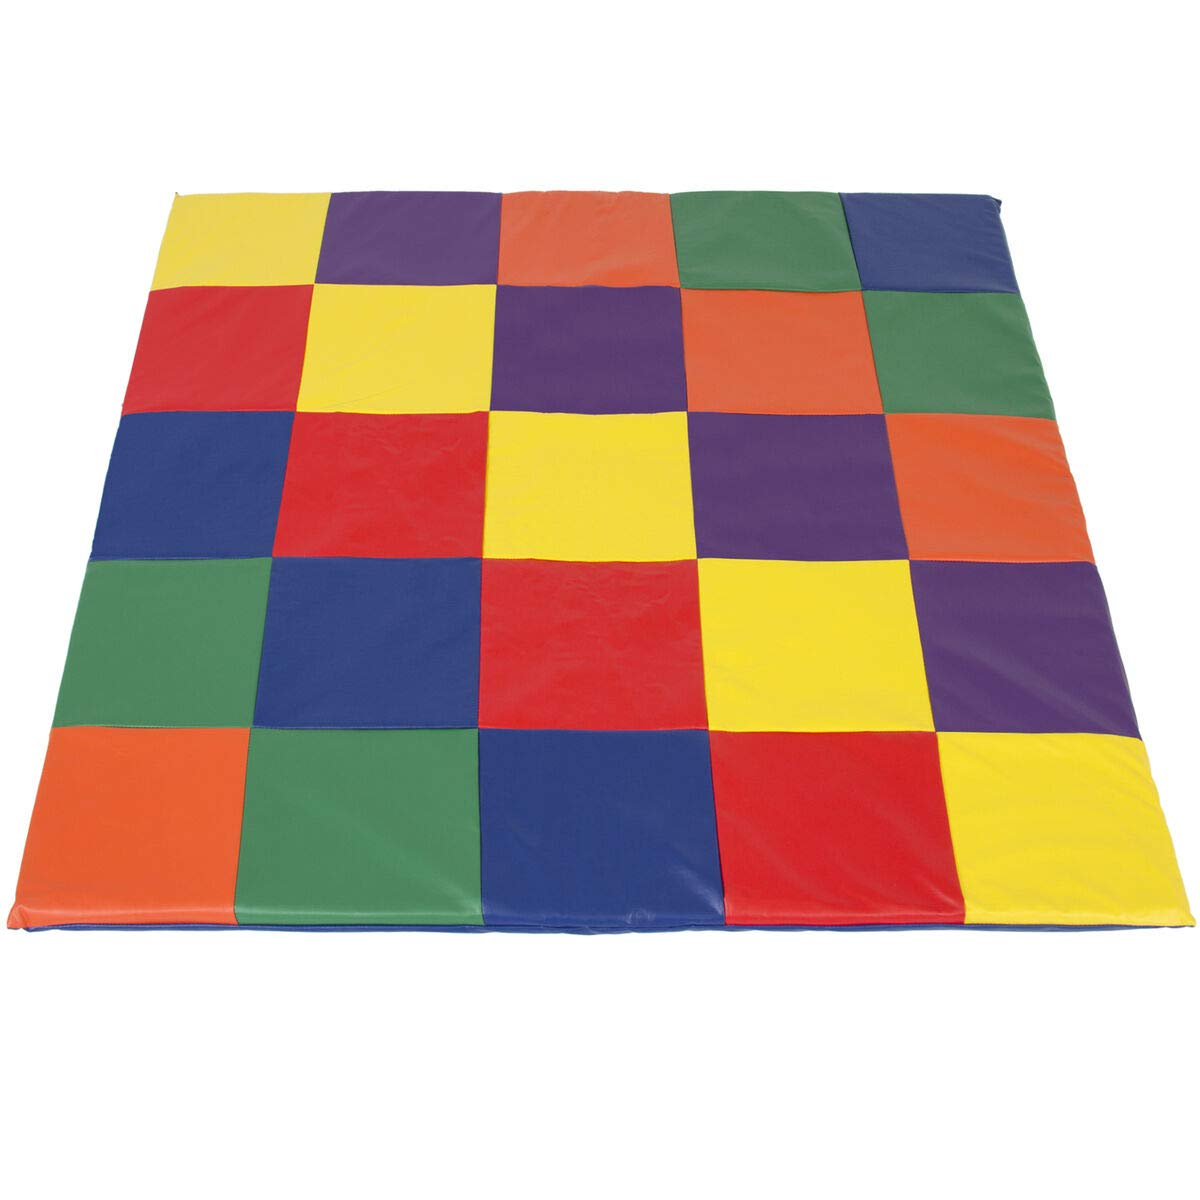 58x58in Foam Cushioned Toddler Play Floor Mat w/ 2-Inch Thick Cushion, Best Children's Toys 2019